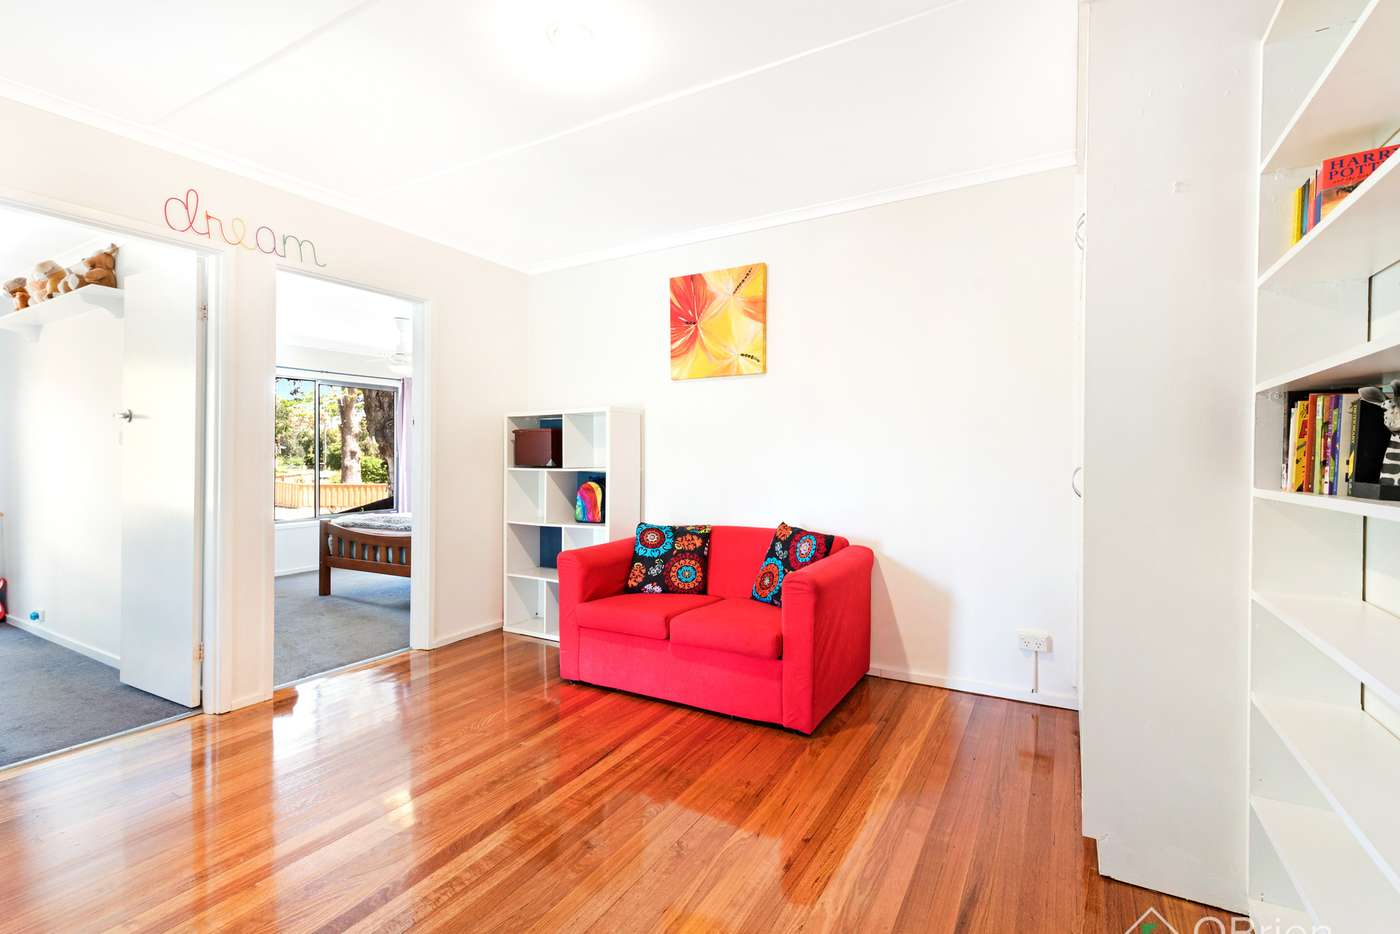 Sixth view of Homely house listing, 7 Poplar Street, Frankston North VIC 3200